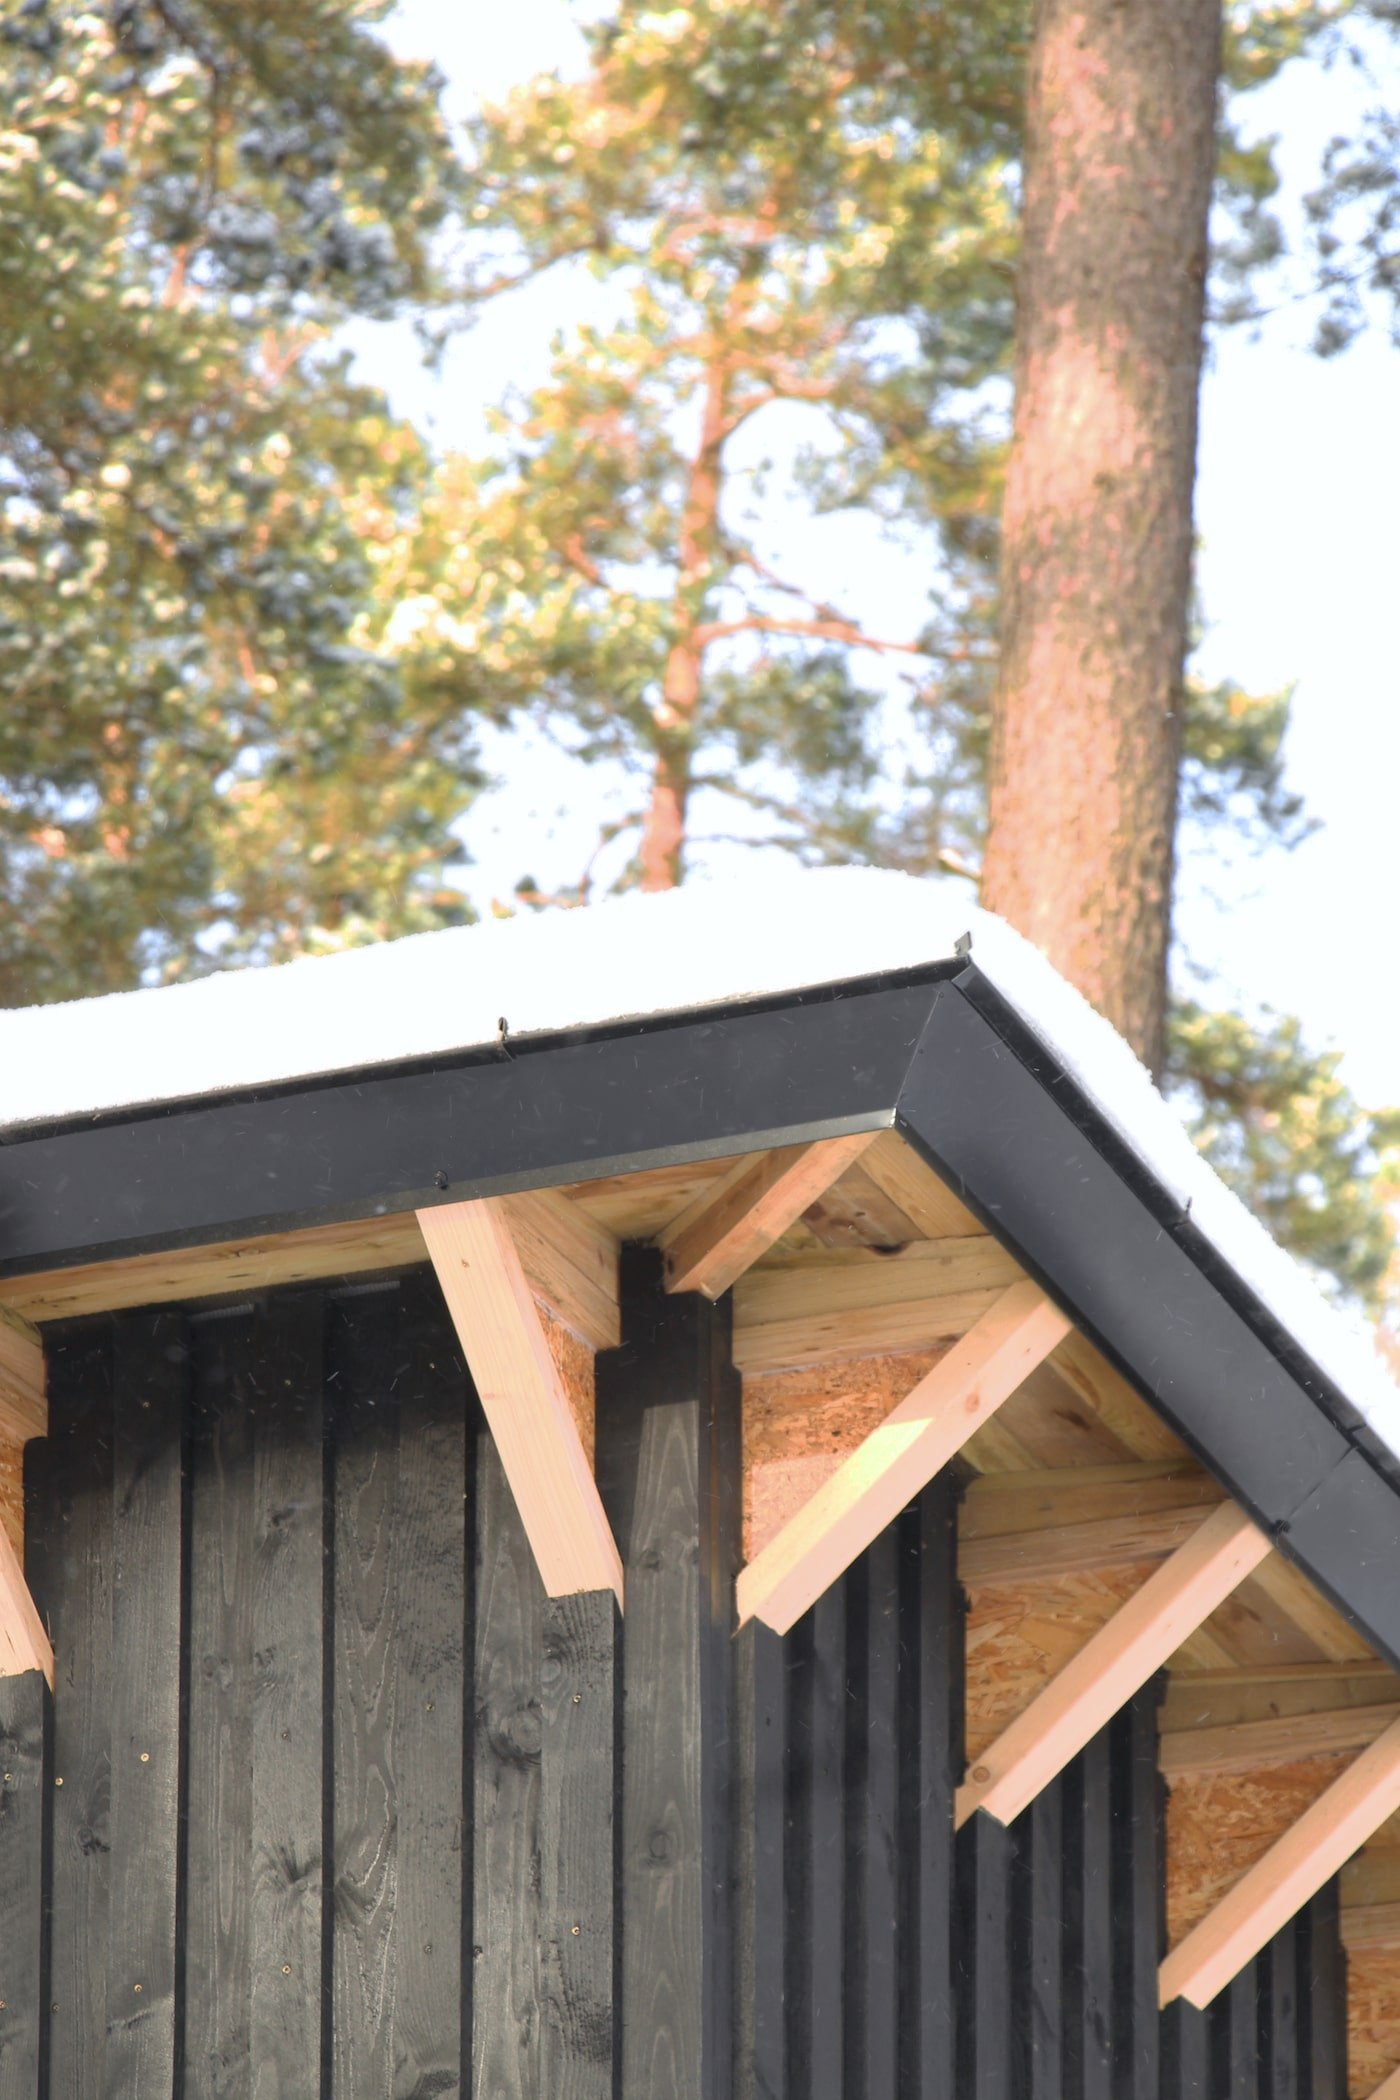 Close up view of peaked roof and timber structure